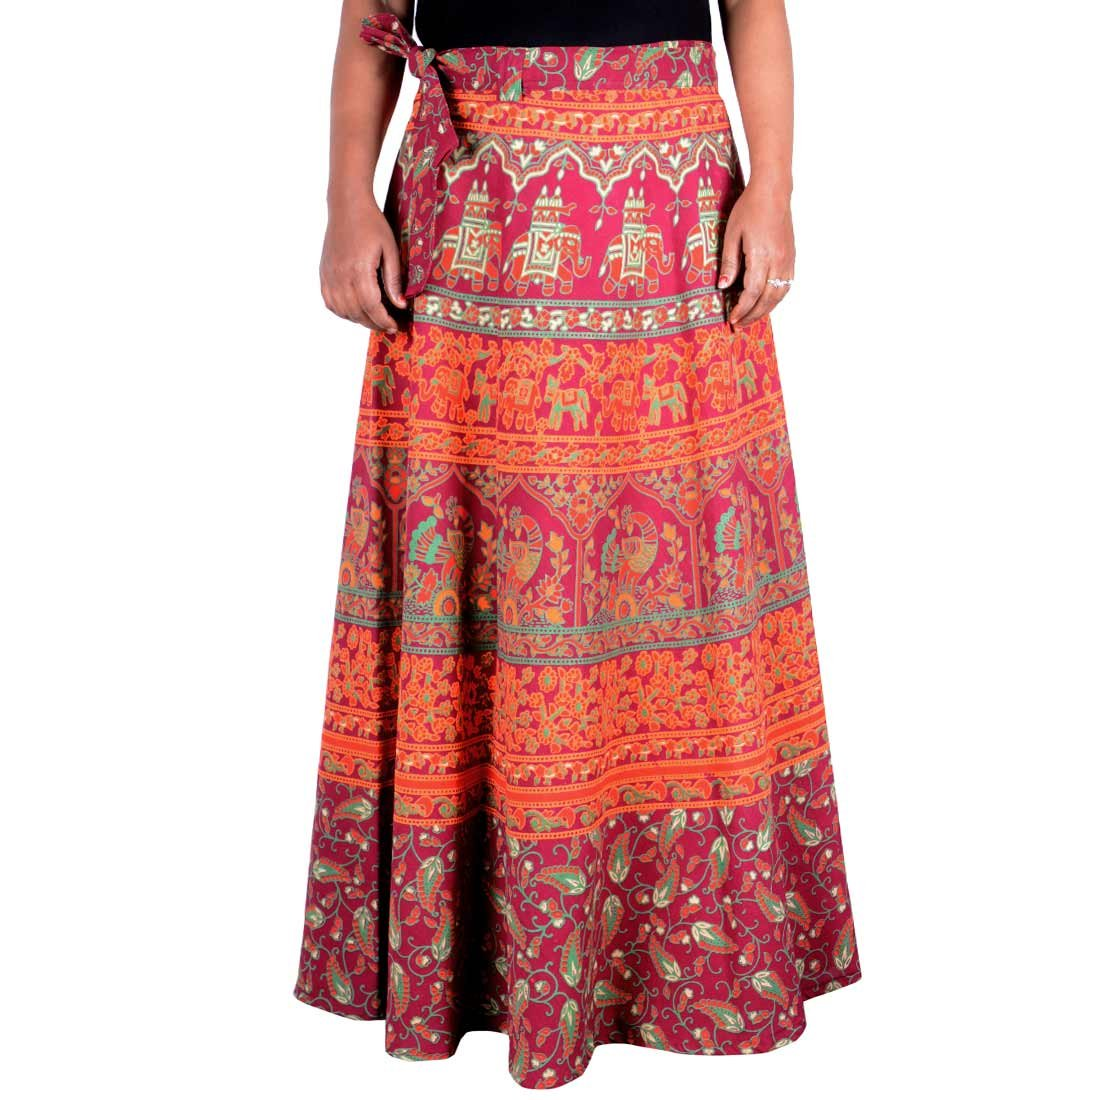 7d7e3dc9d8 Sttoffa Skirt Indian Multi Color Cotton Long Wrap Around Skirt Ethnic  Traditional Rapron Skirt at Amazon Women's Clothing store: